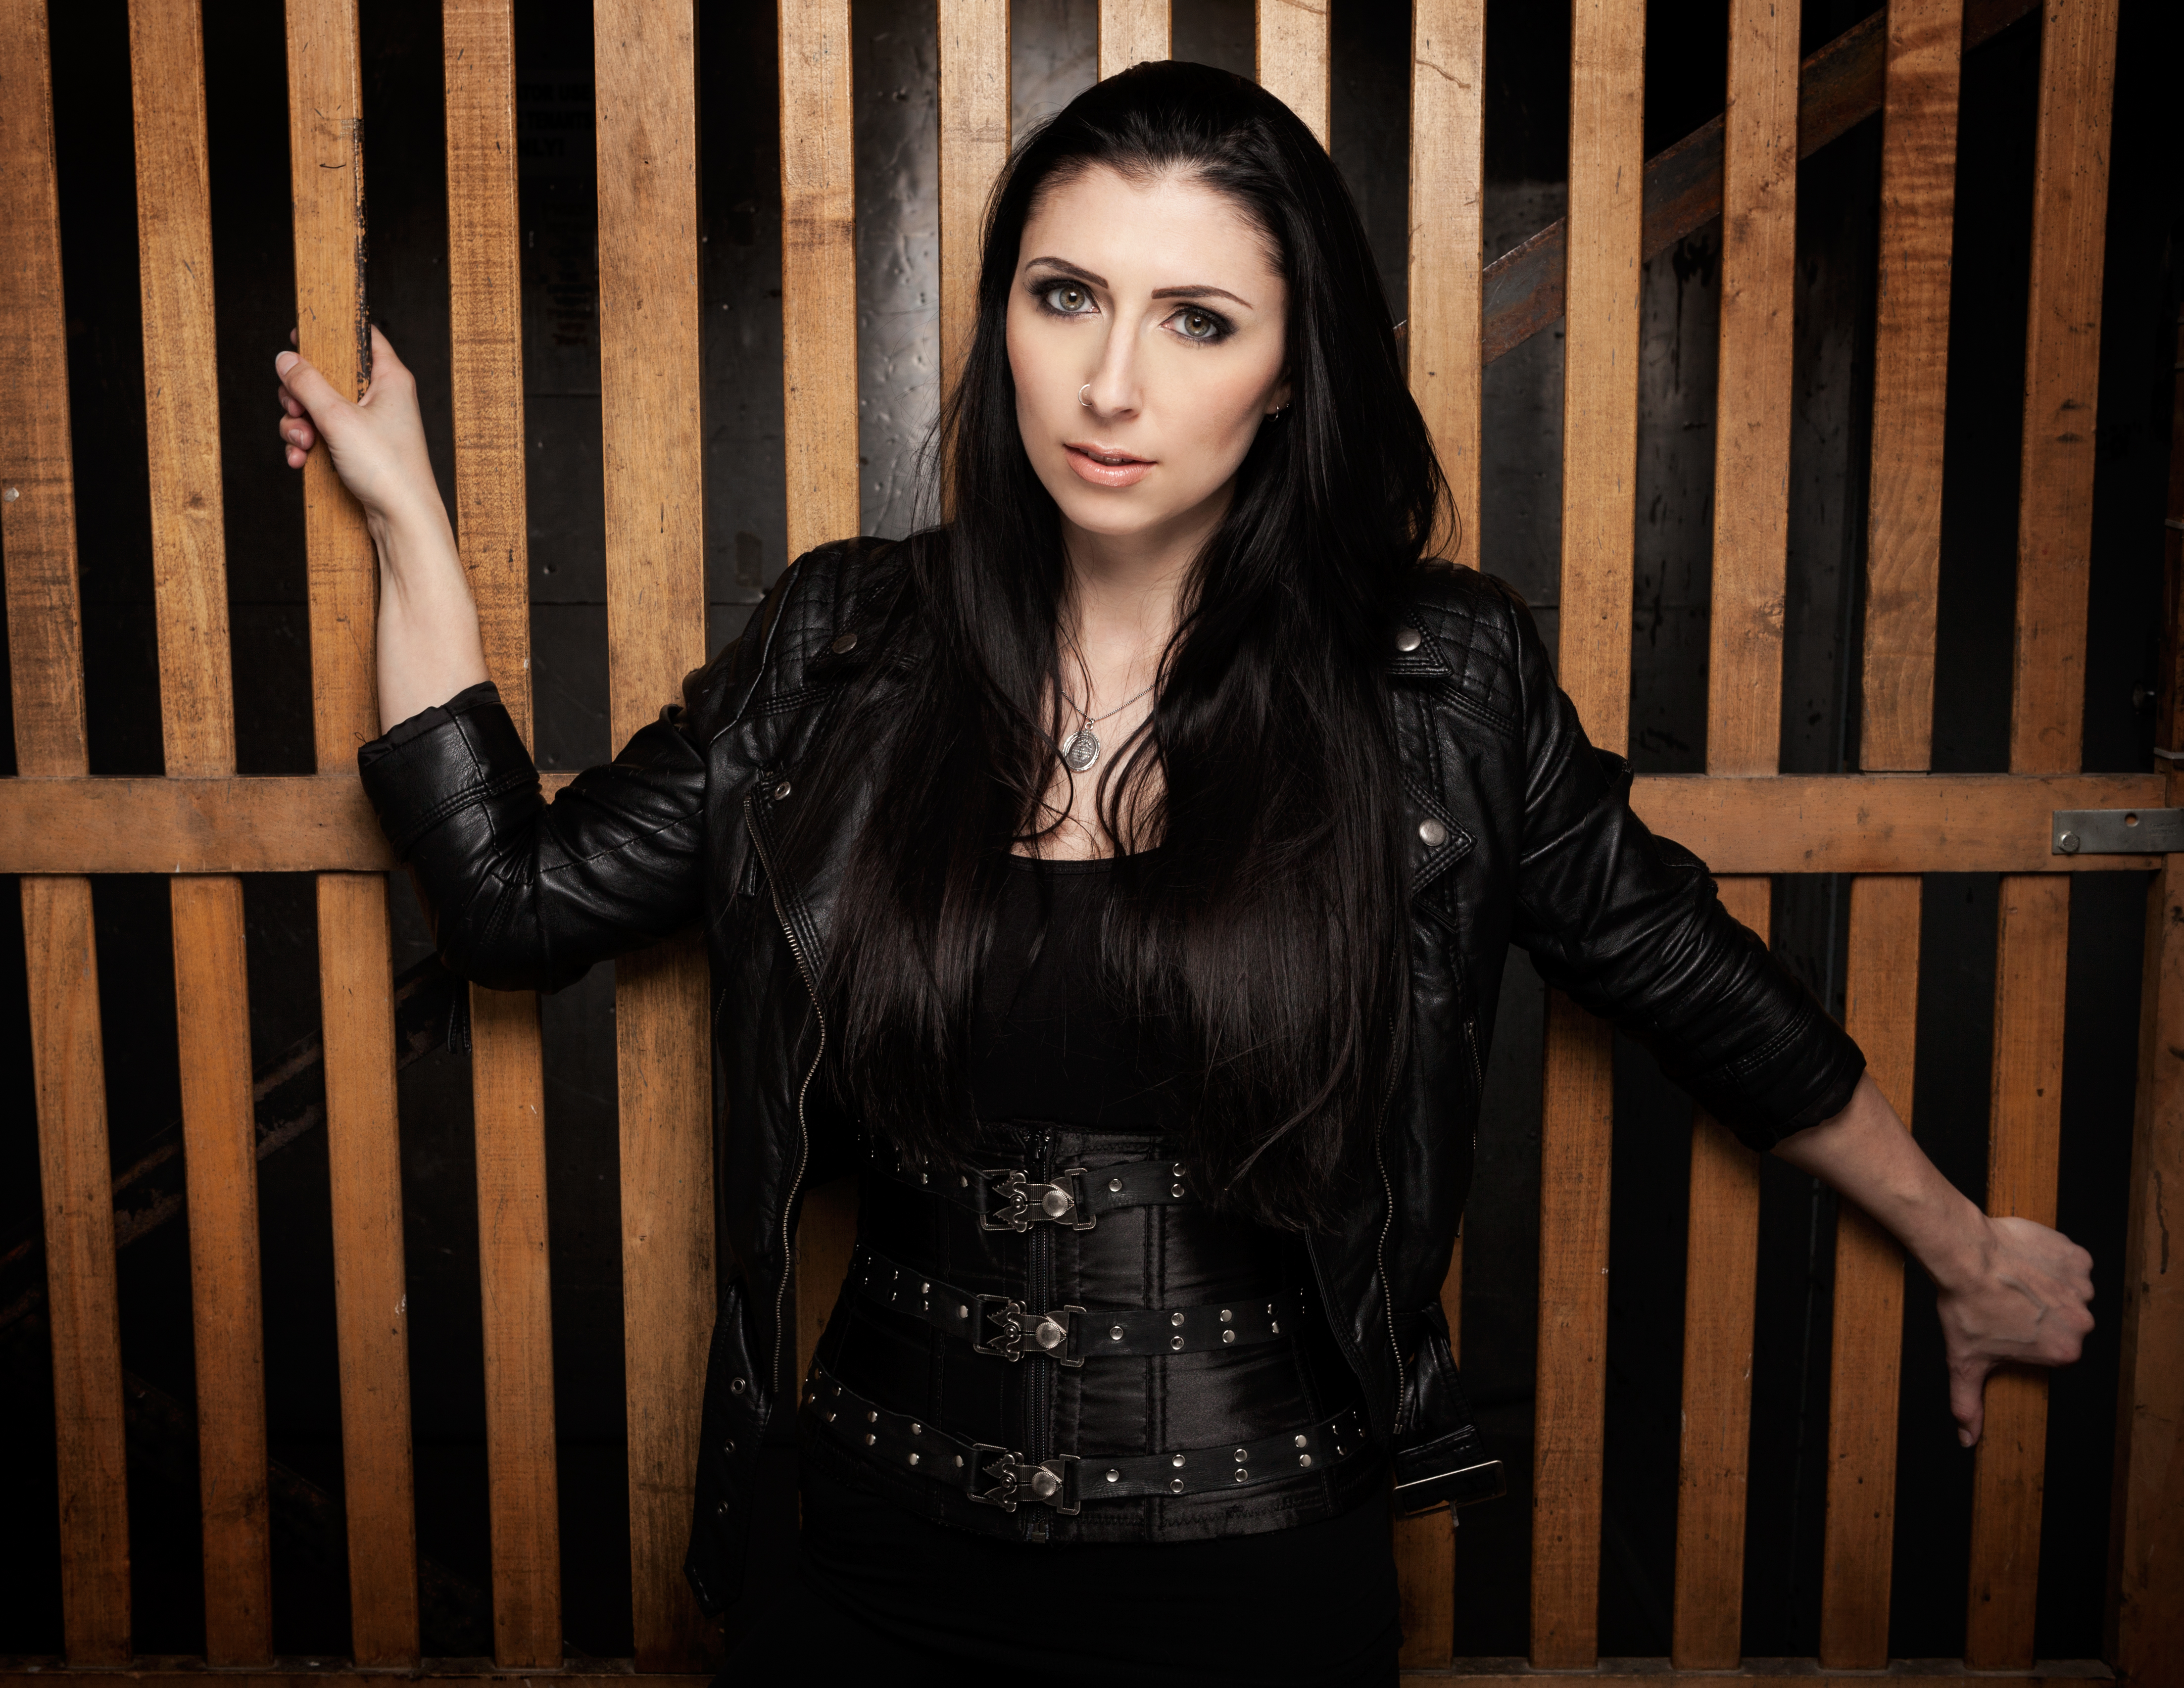 Unleash The Archers images Brittney Slayes 1554 highres HD wallpaper and  background photos